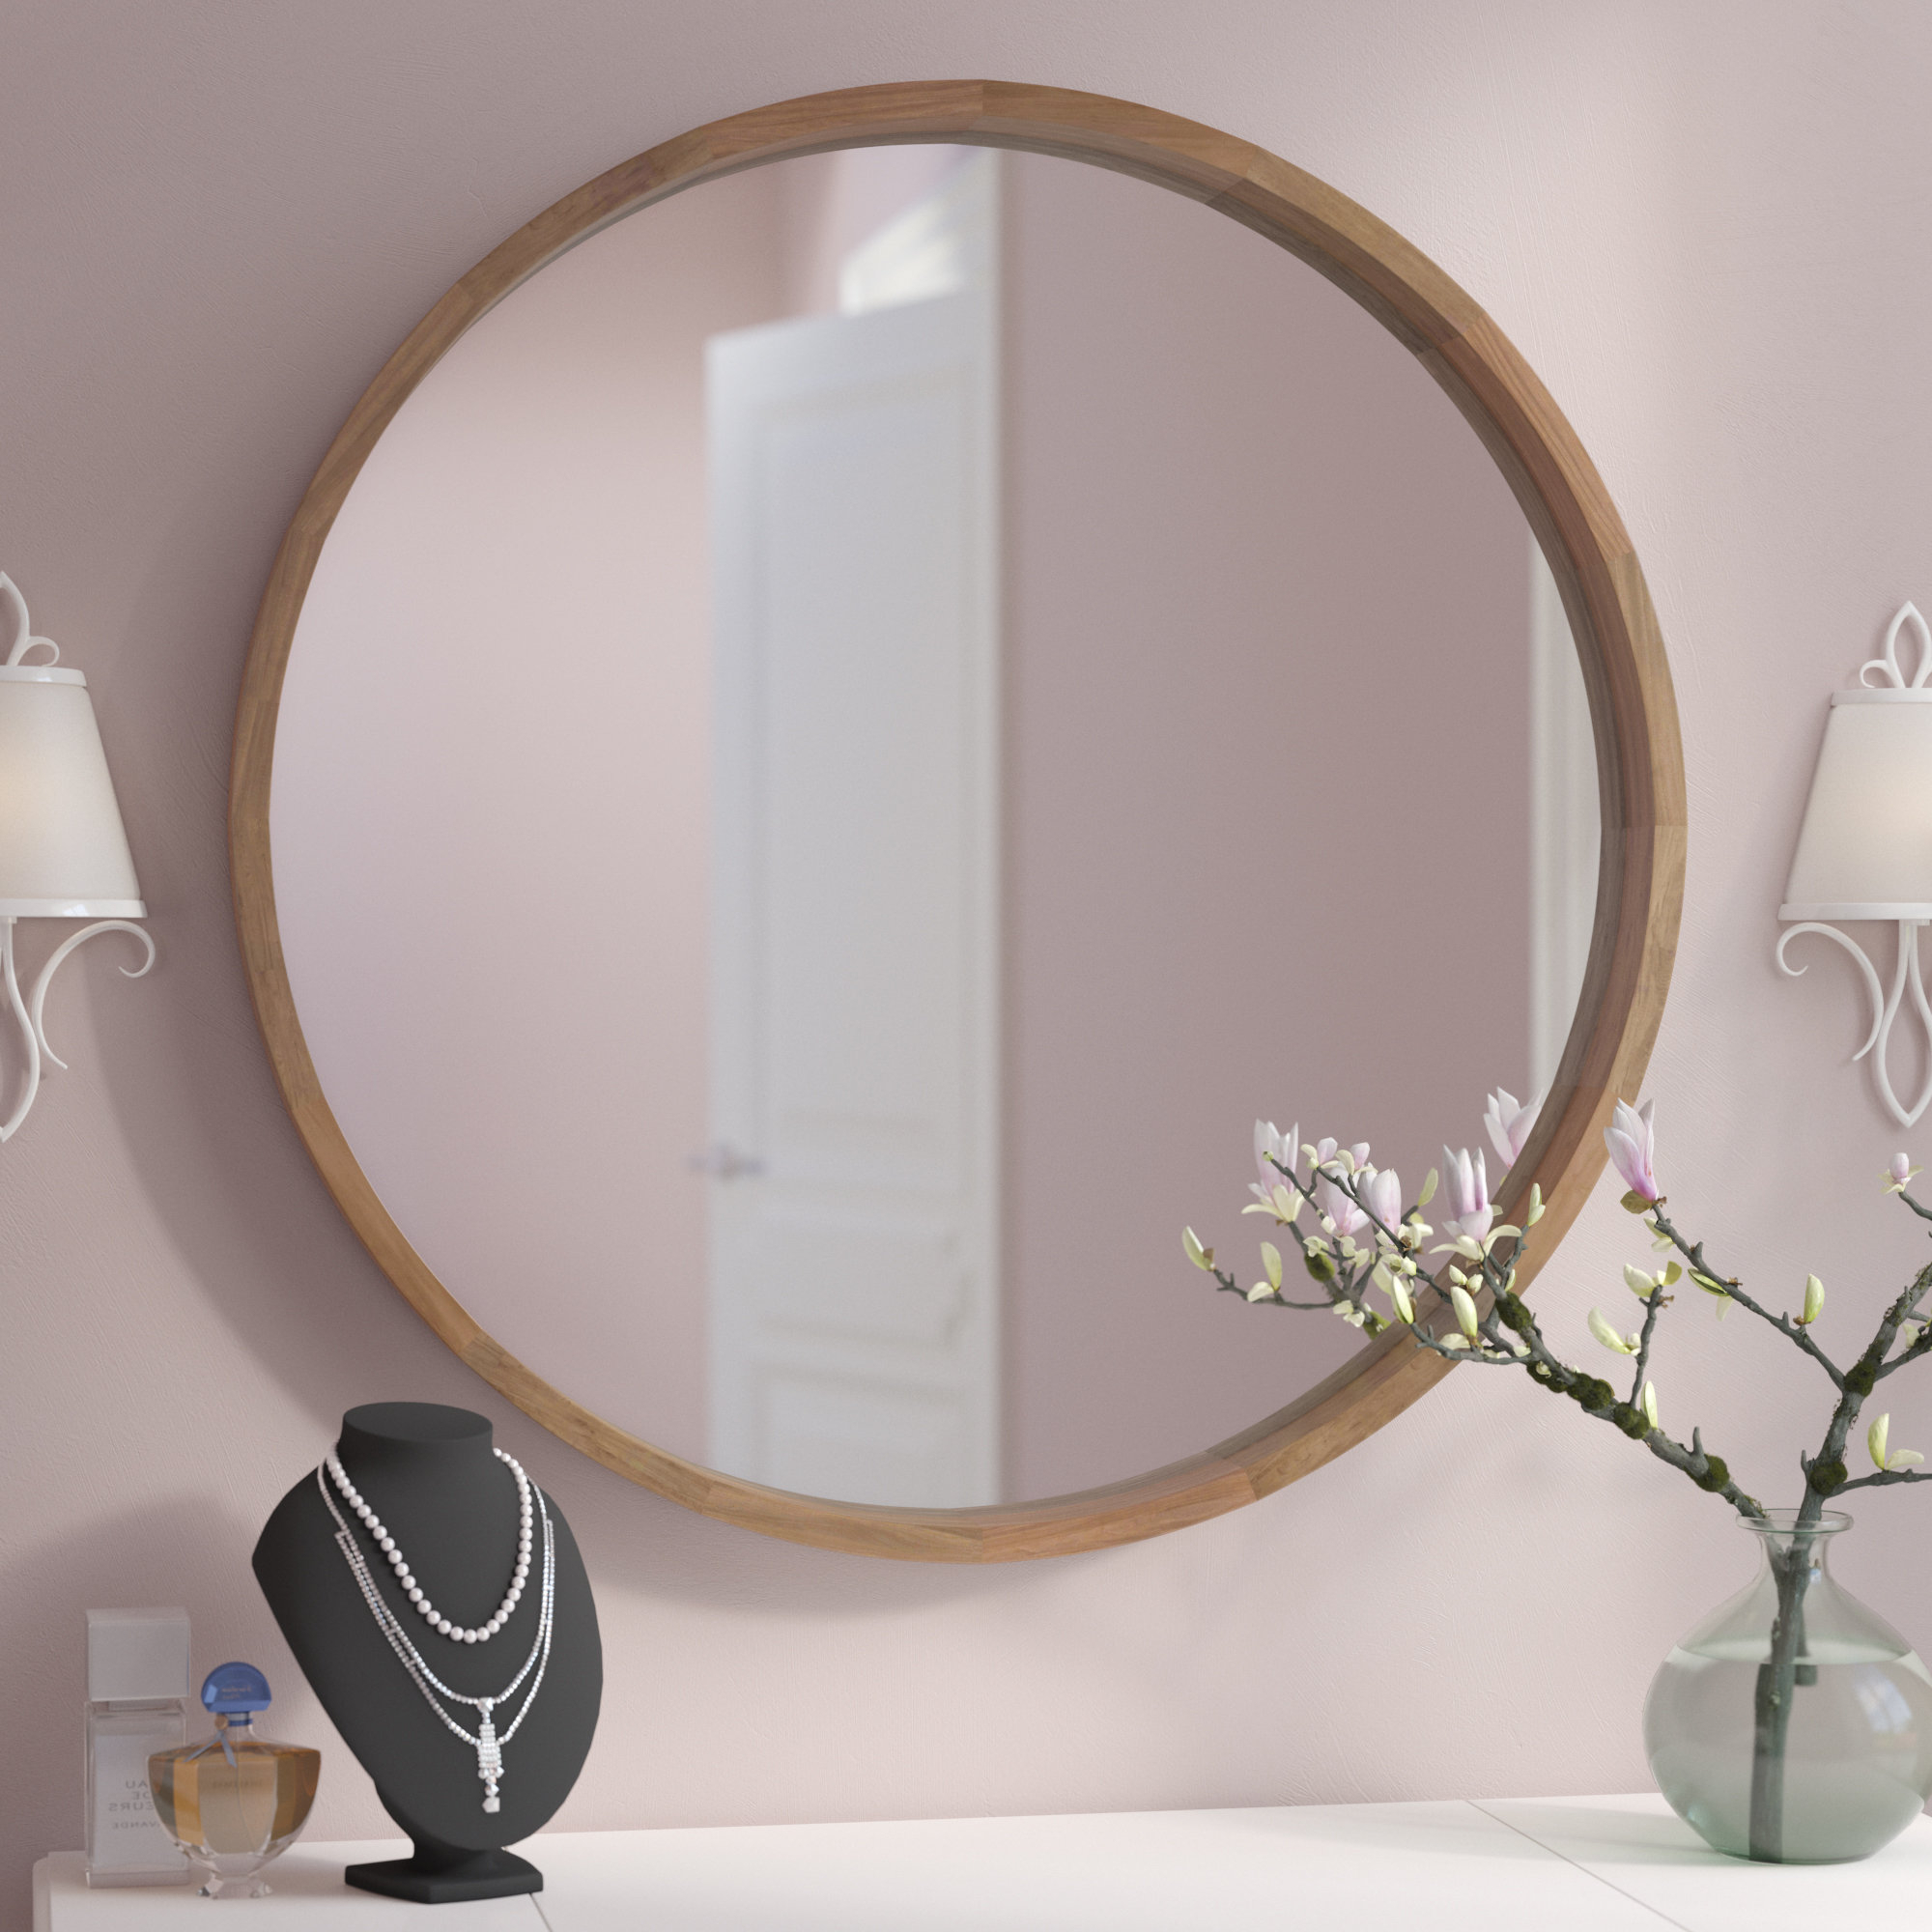 Round Wood Mirrors You'll Love In (View 2 of 20)